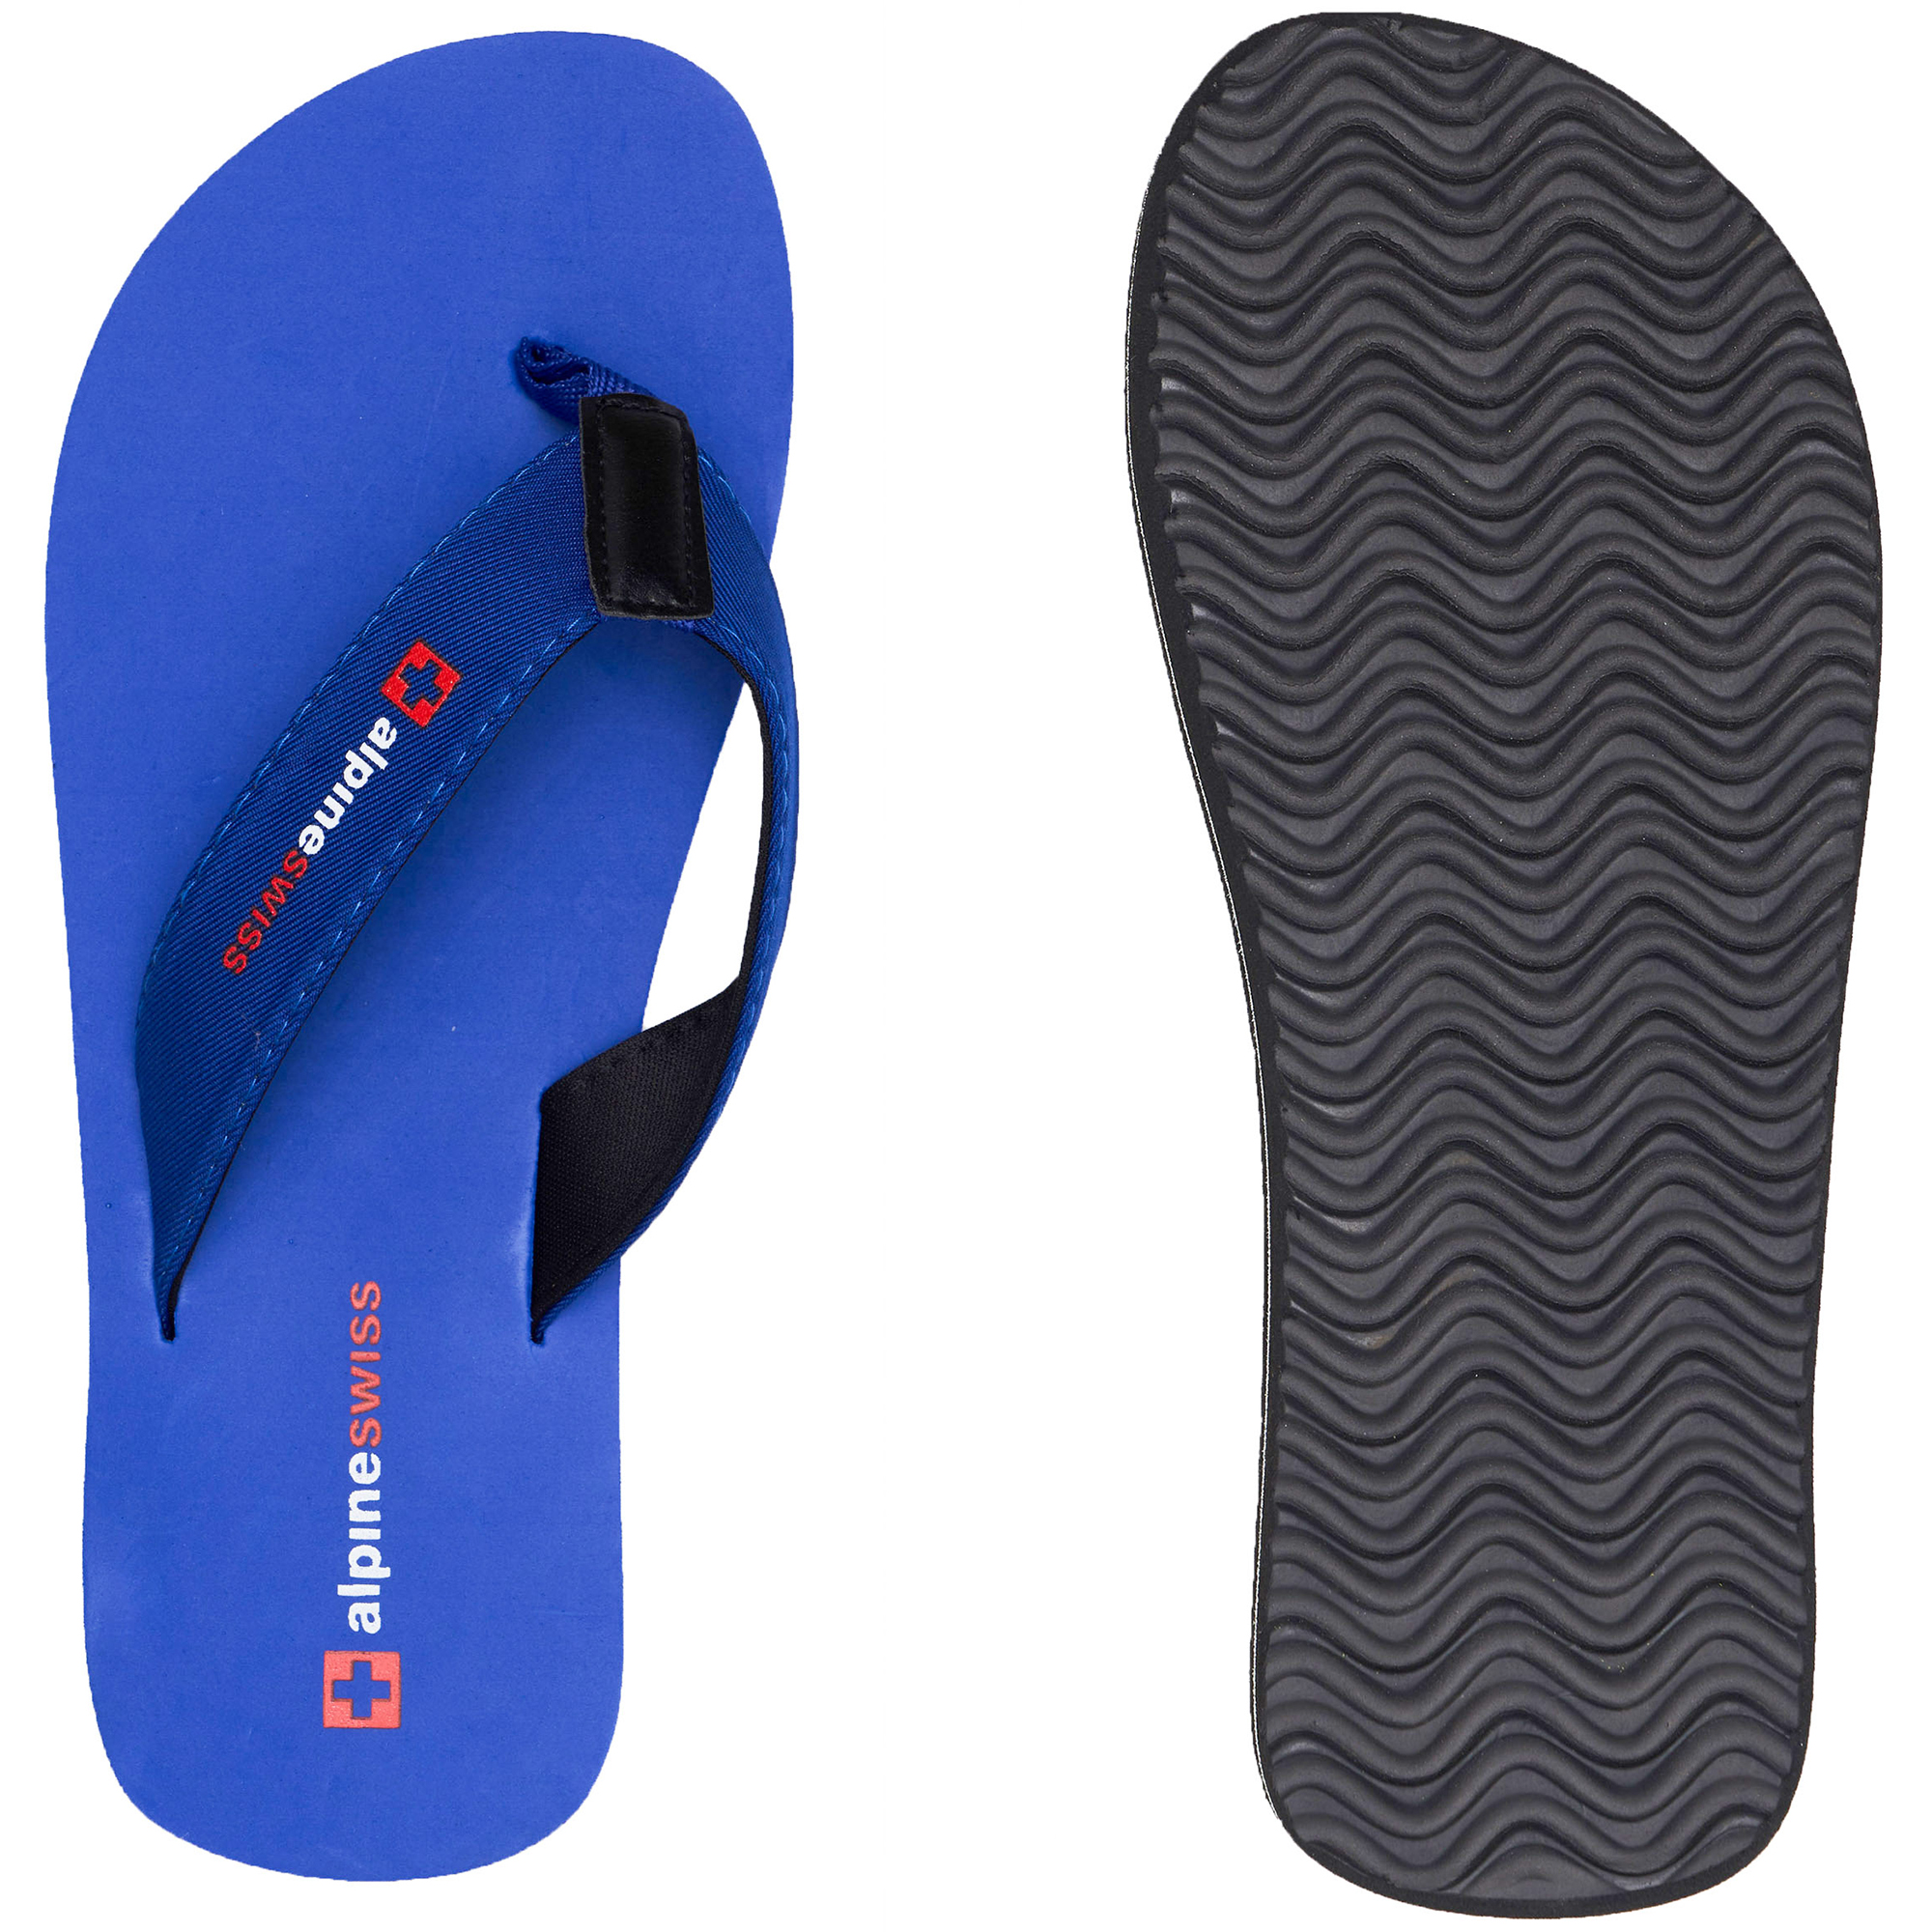 Alpine-Swiss-Mens-Flip-Flops-Beach-Sandals-Lightweight-EVA-Sole-Comfort-Thongs thumbnail 61